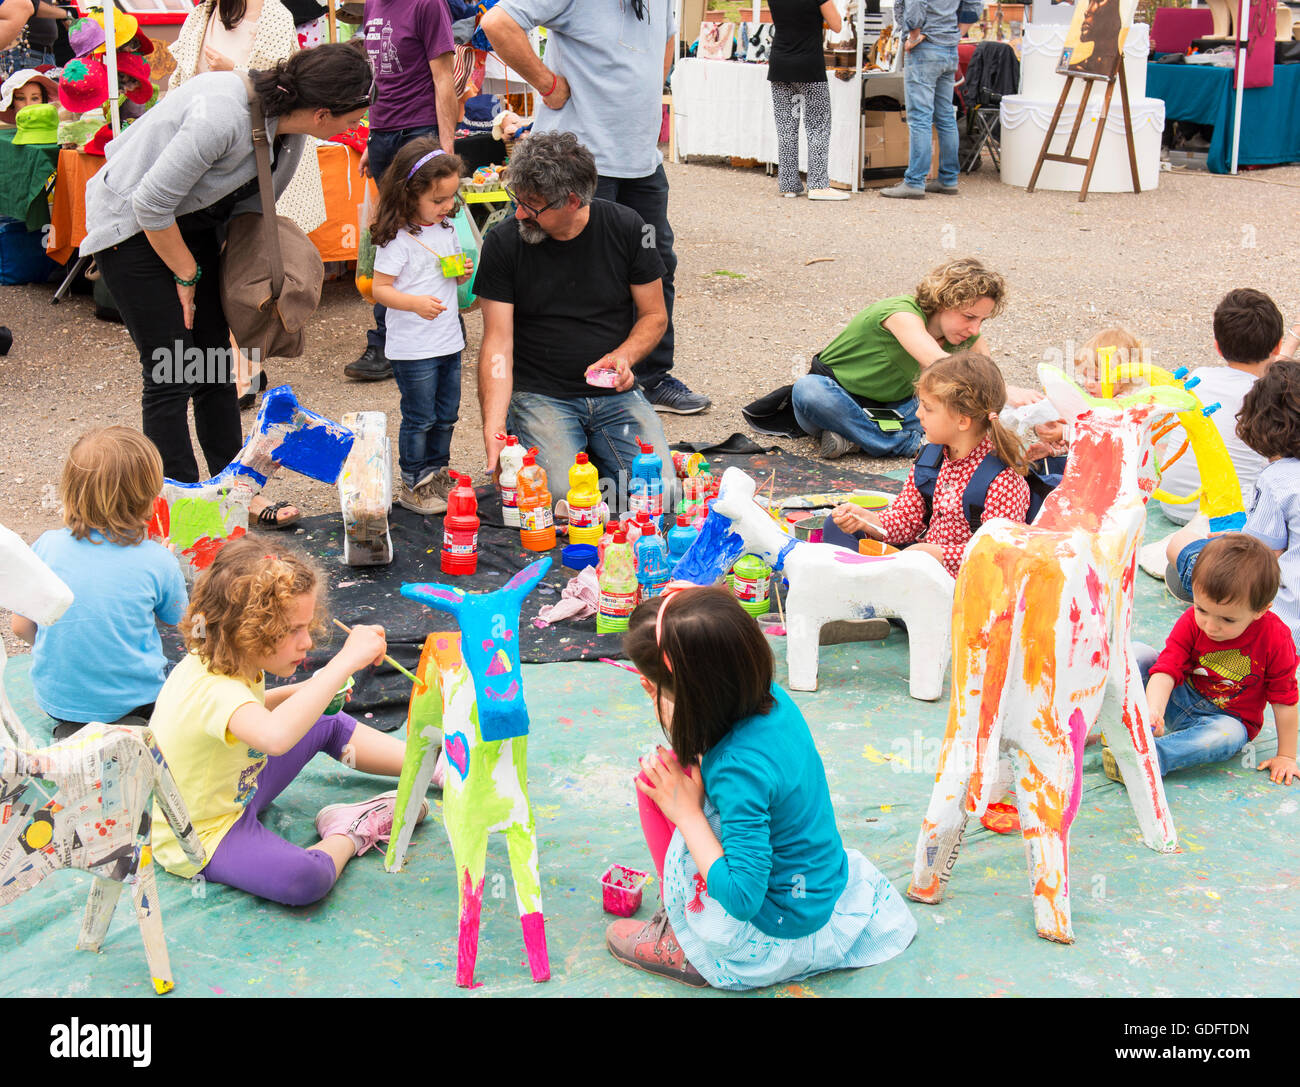 Children are entertained with arts and crafts at Rome's Testaccio Market. - Stock Image